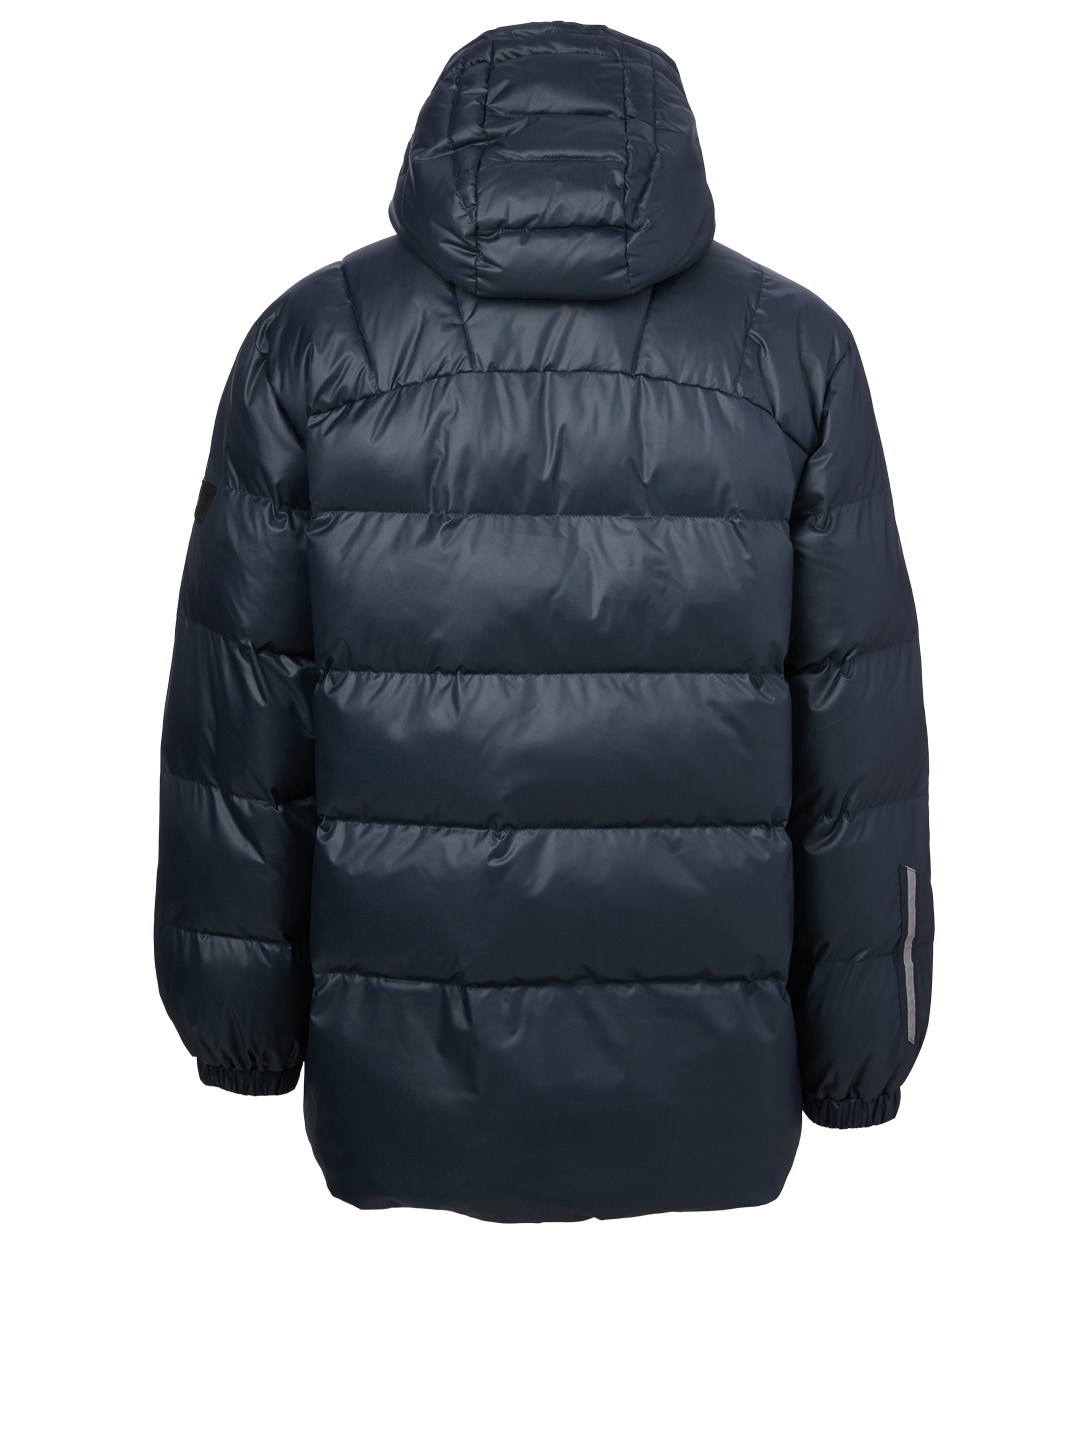 NORDEN Rikard Puffer Jacket Men's Blue